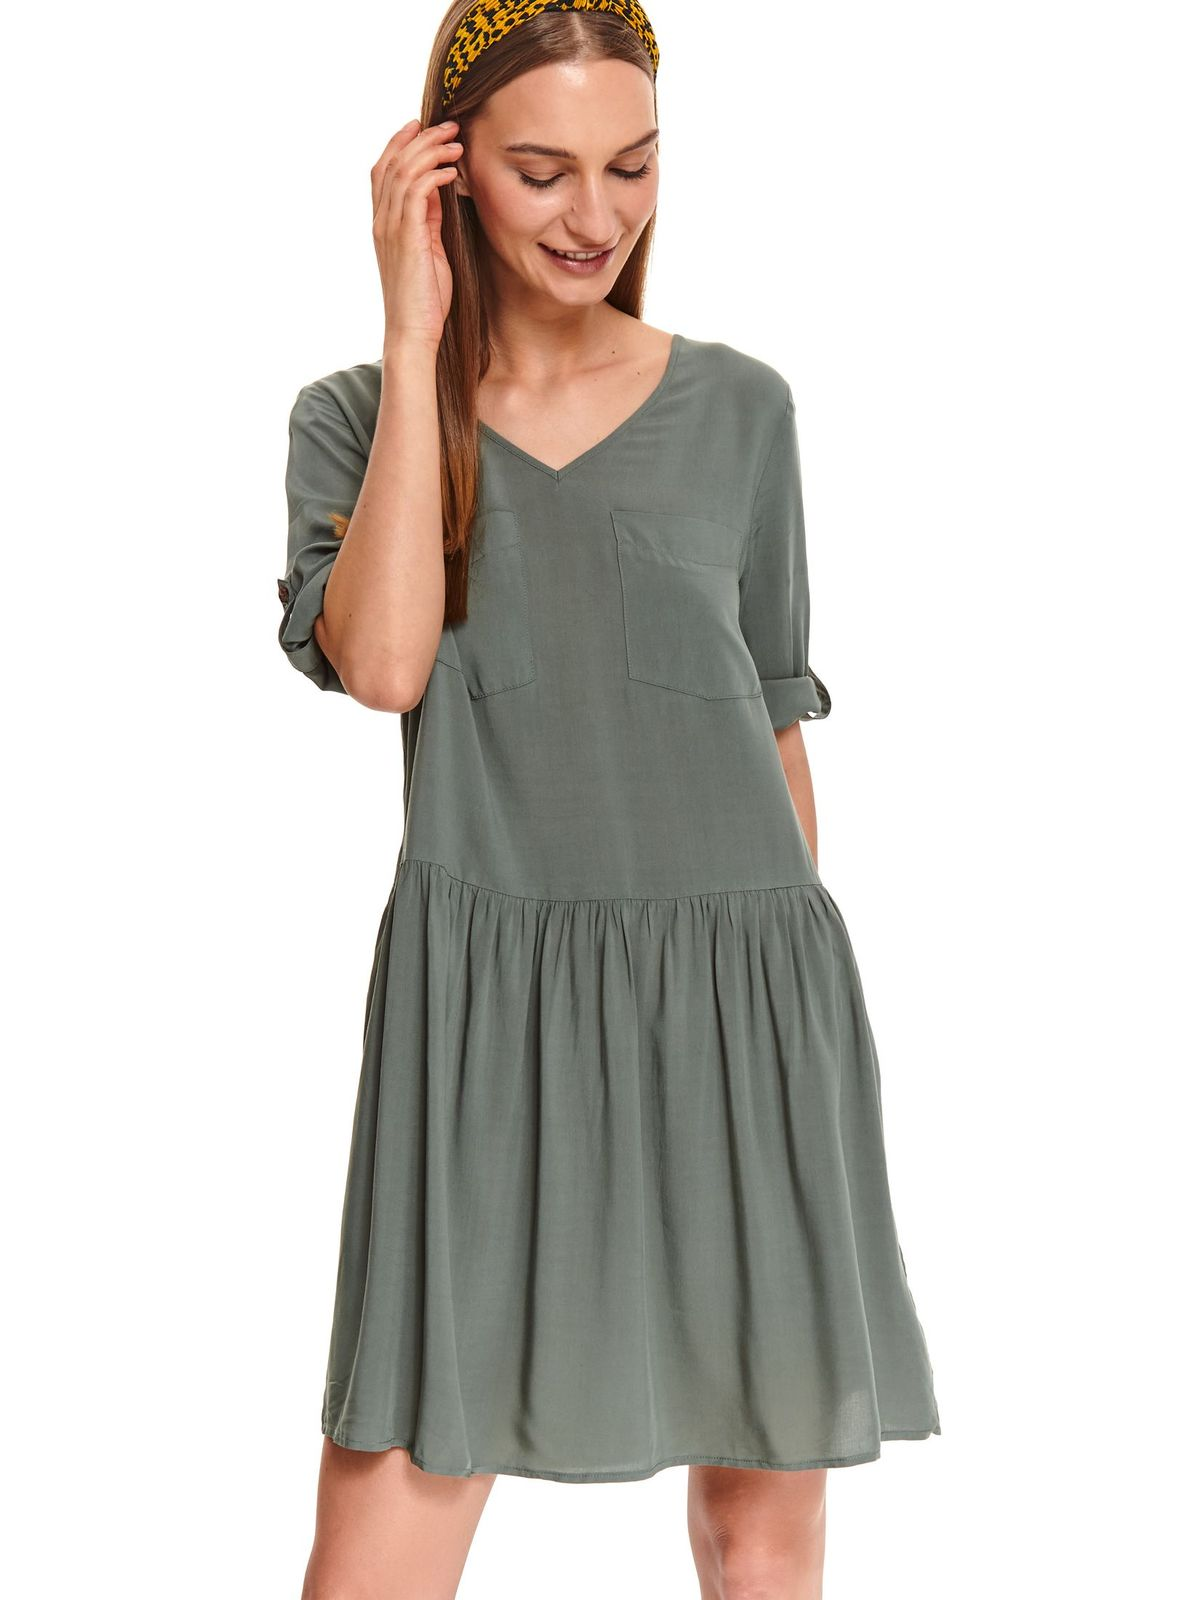 Green dress daily short cut flared with v-neckline airy fabric